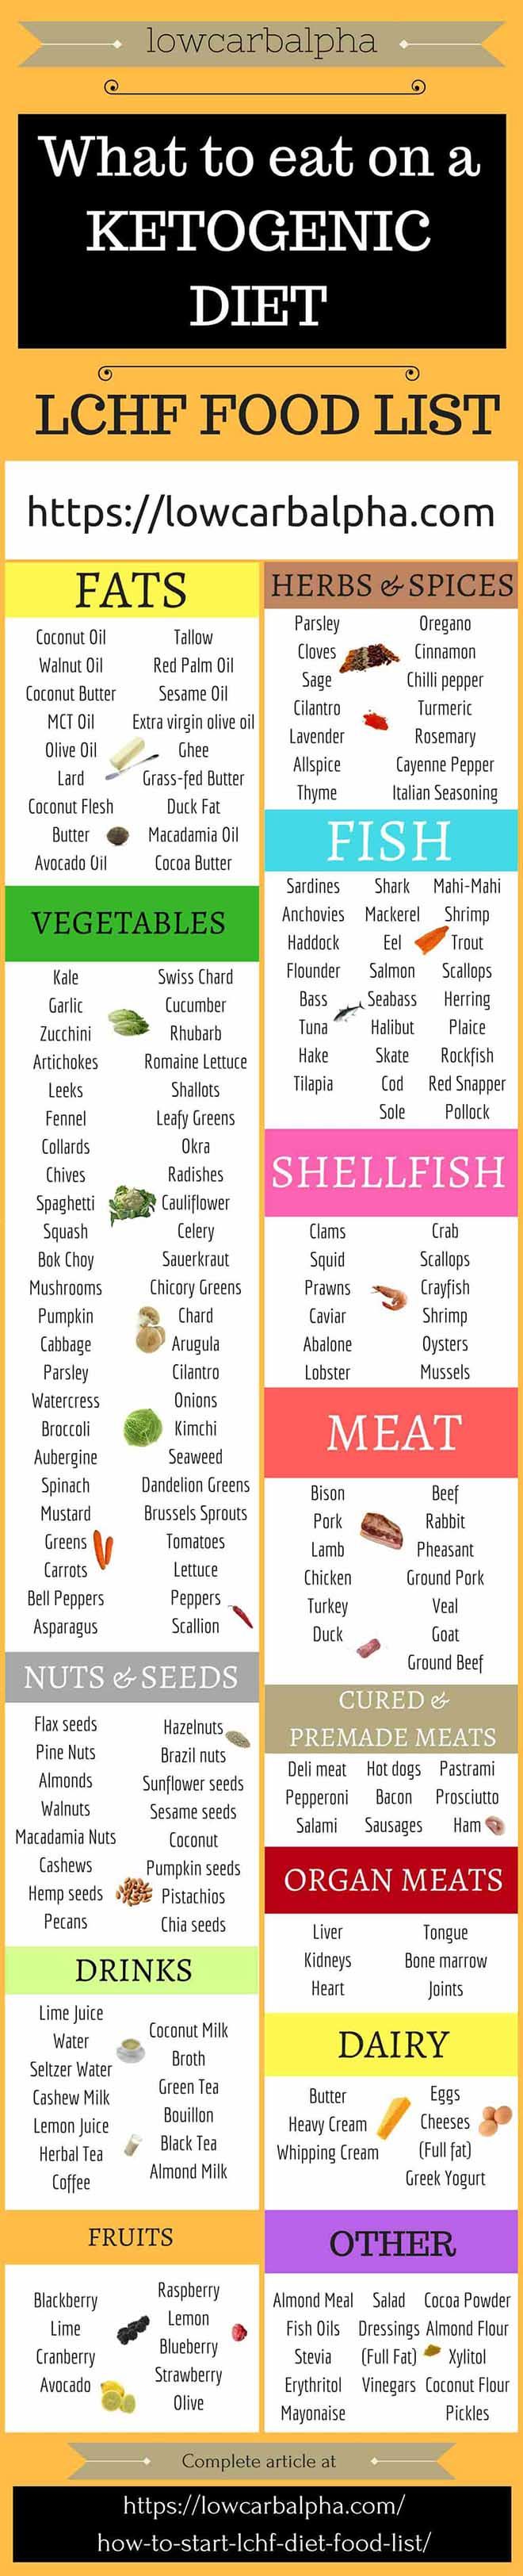 Ketogenic Quick Start | All About Ketogenic Diet